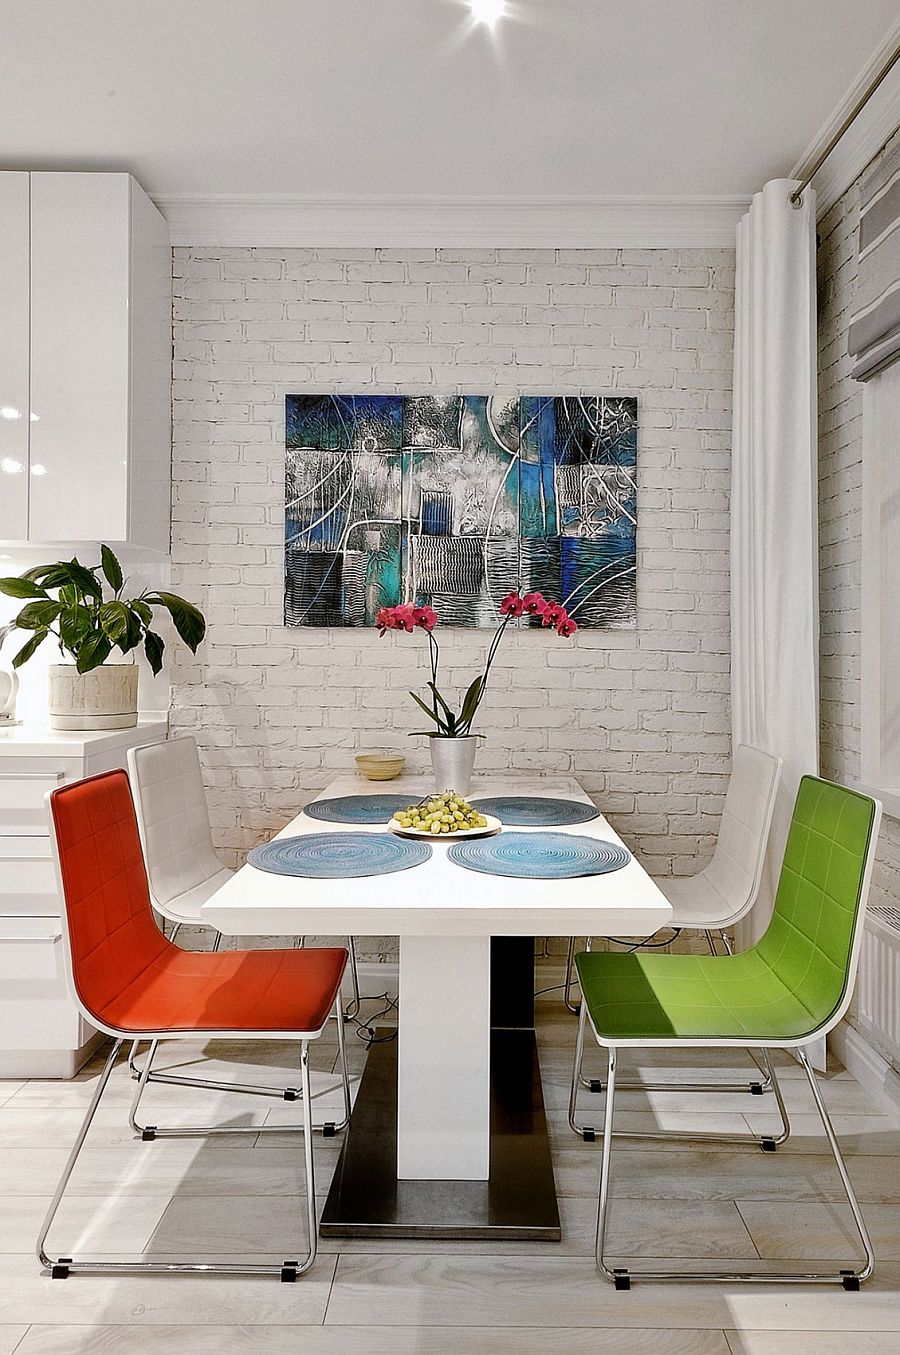 Small dining area idea for tiny apartment